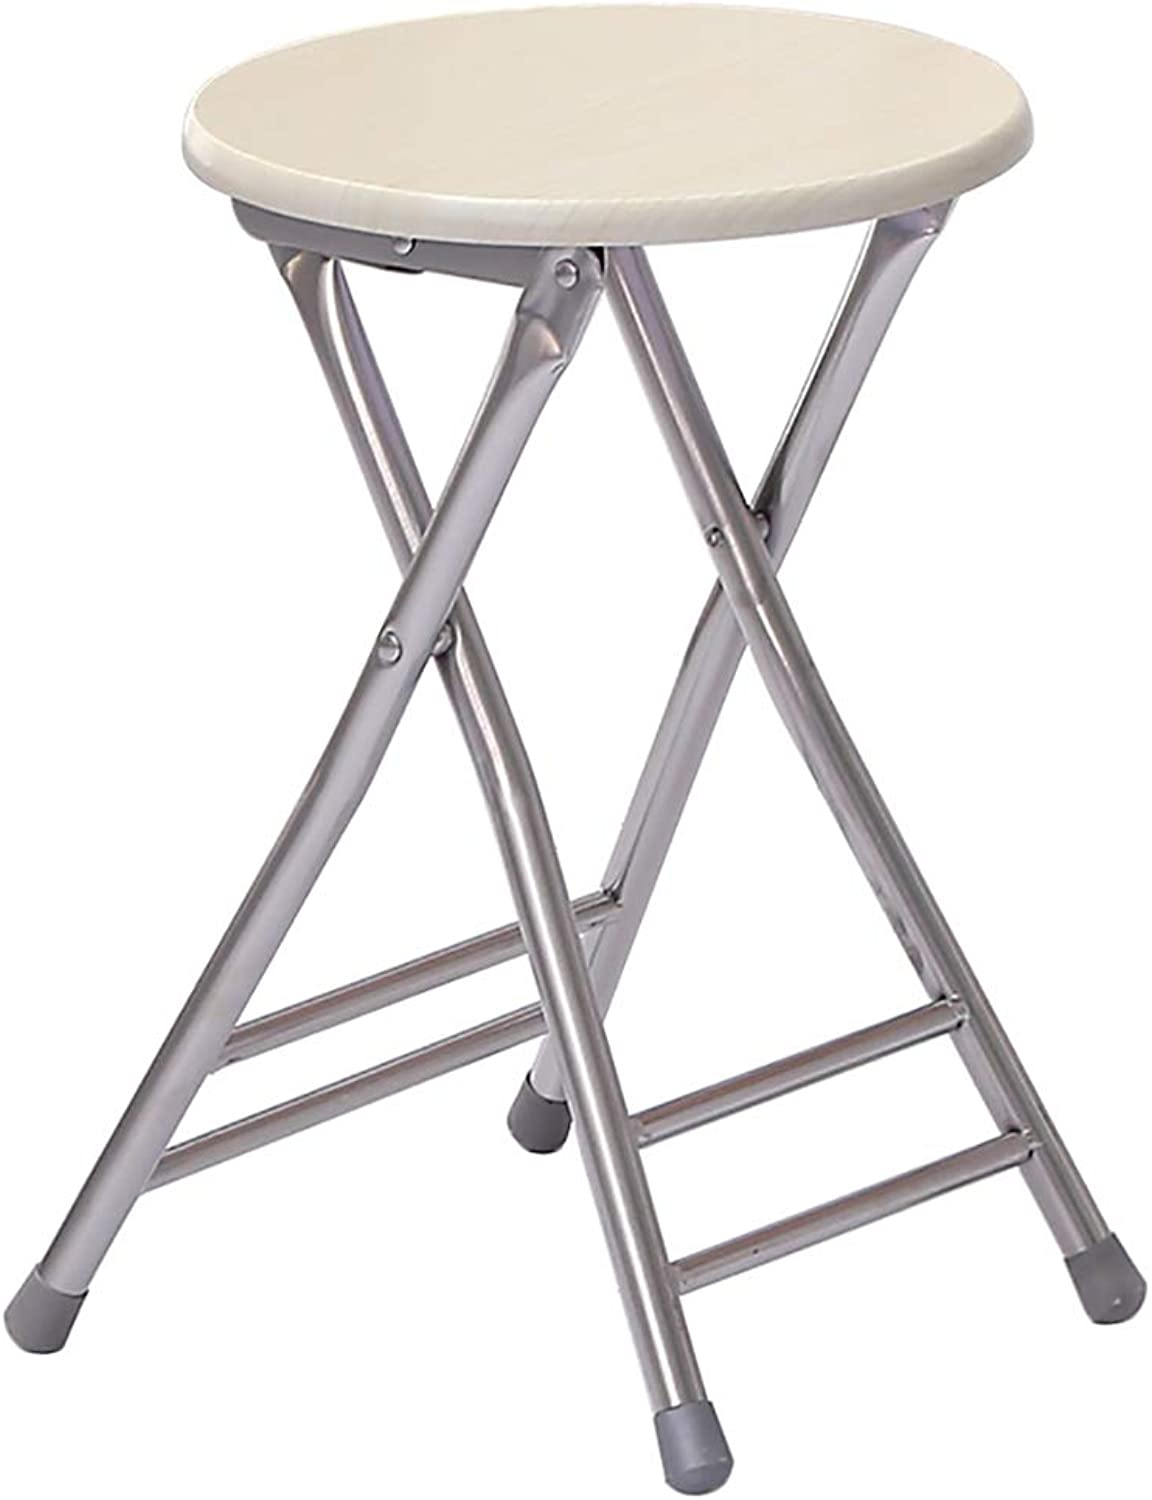 FW Folding Stool, Casual Home Round Stool Storage Convenient Table Stool shoes Bench, 3 colors Optional (color   White, Size   Two)